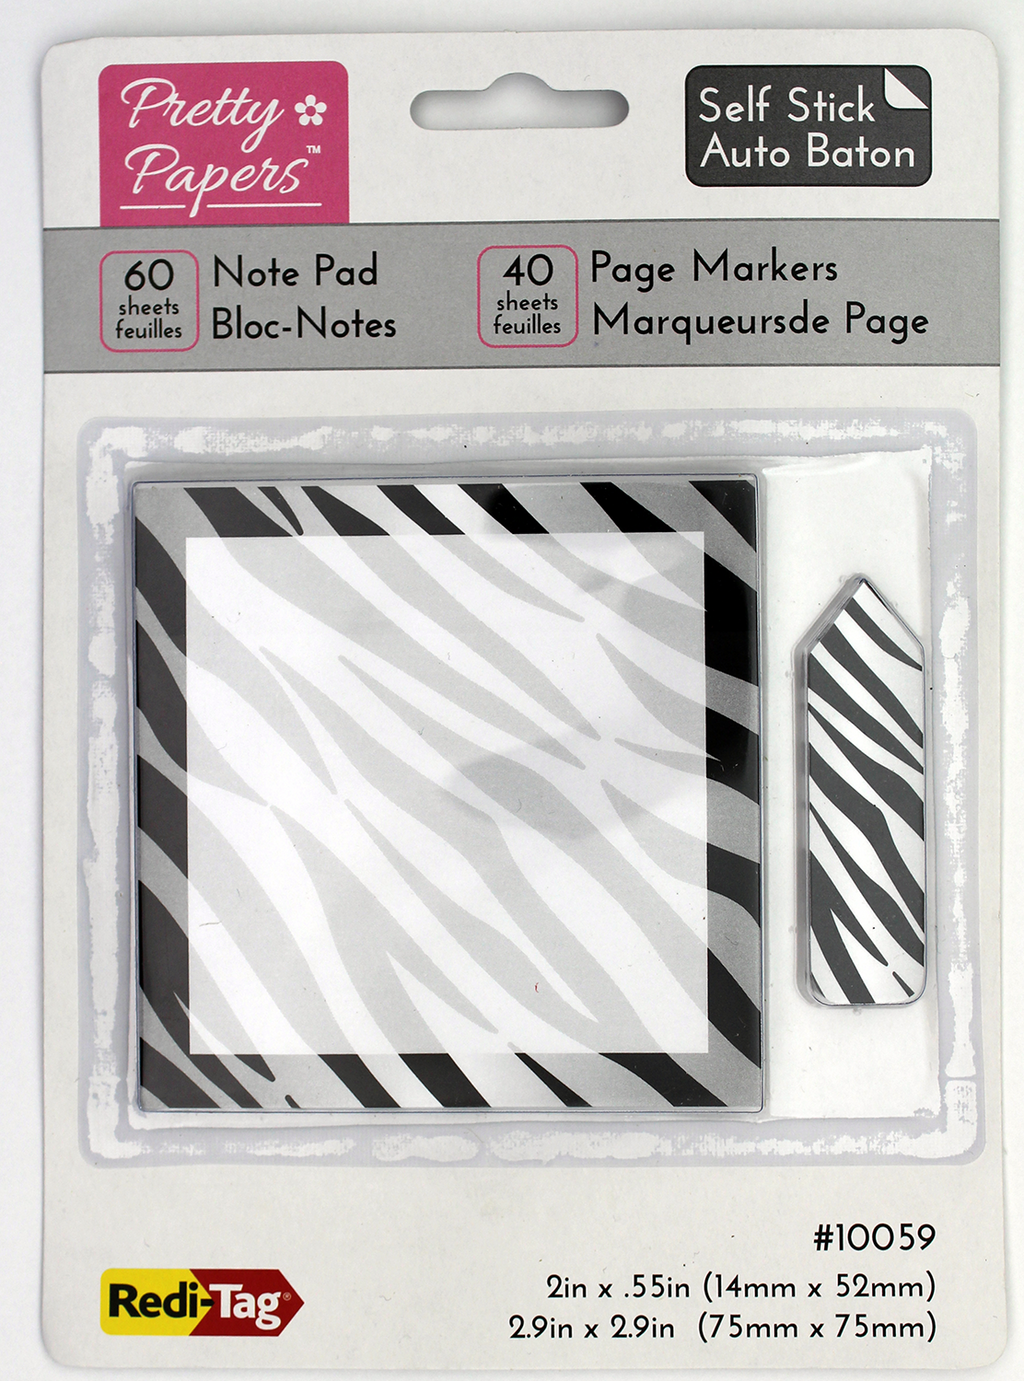 Redi-Tag Sticky Note with Page Markers - Zebra Print